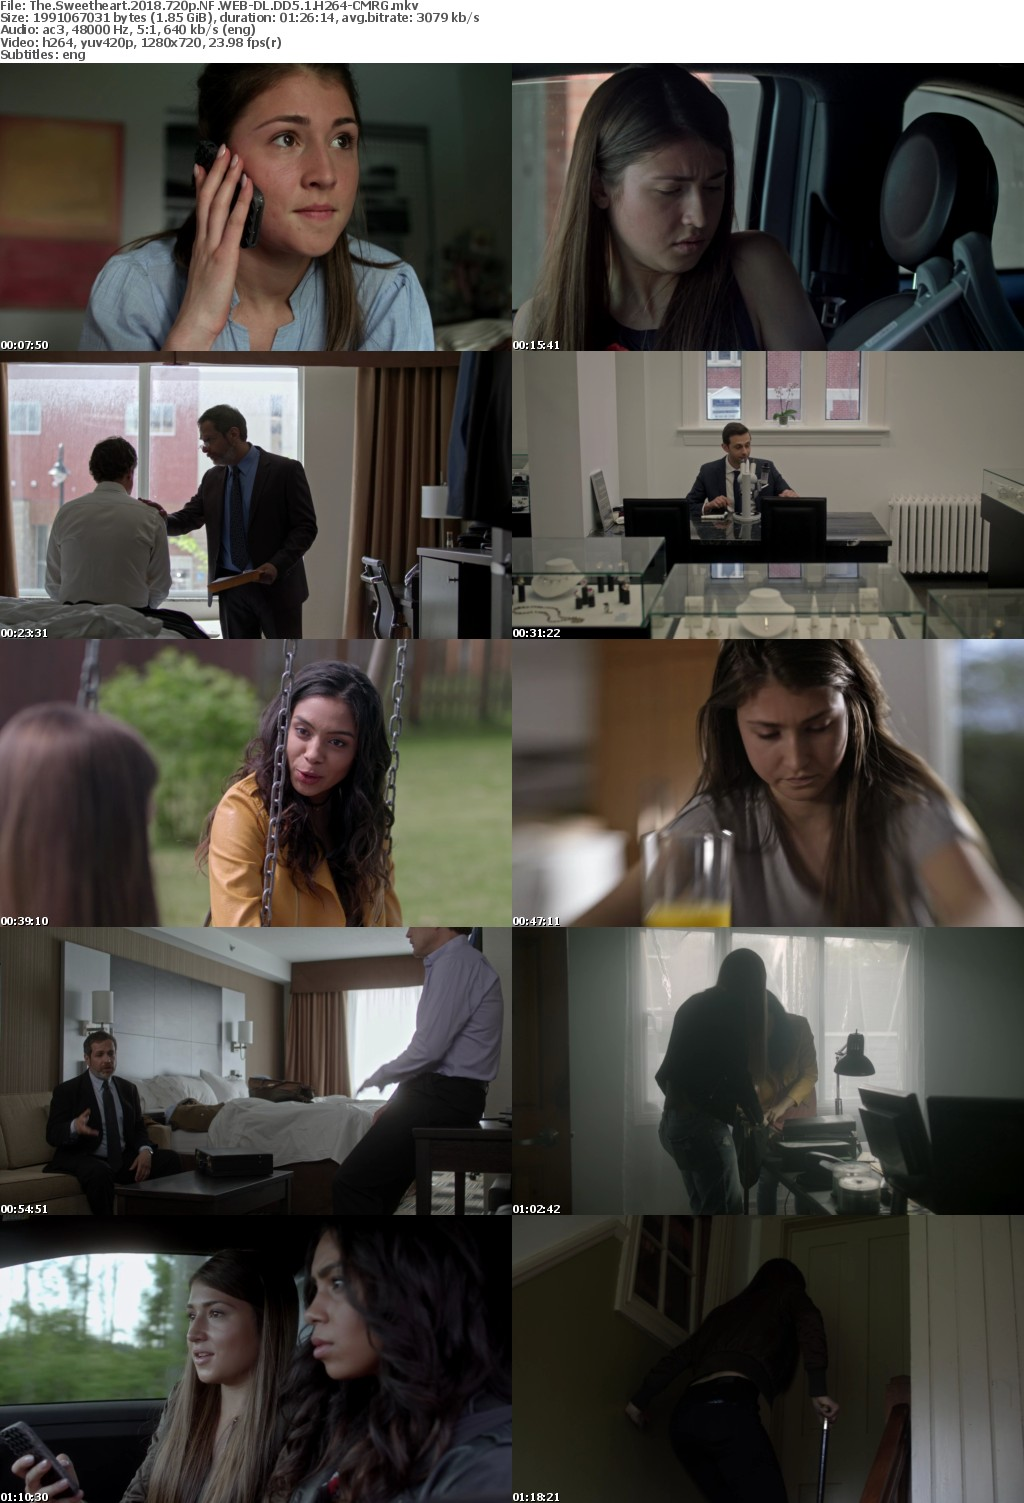 The Sweetheart (2018) 720p NF WEB-DL DD5.1 H264-CMRG